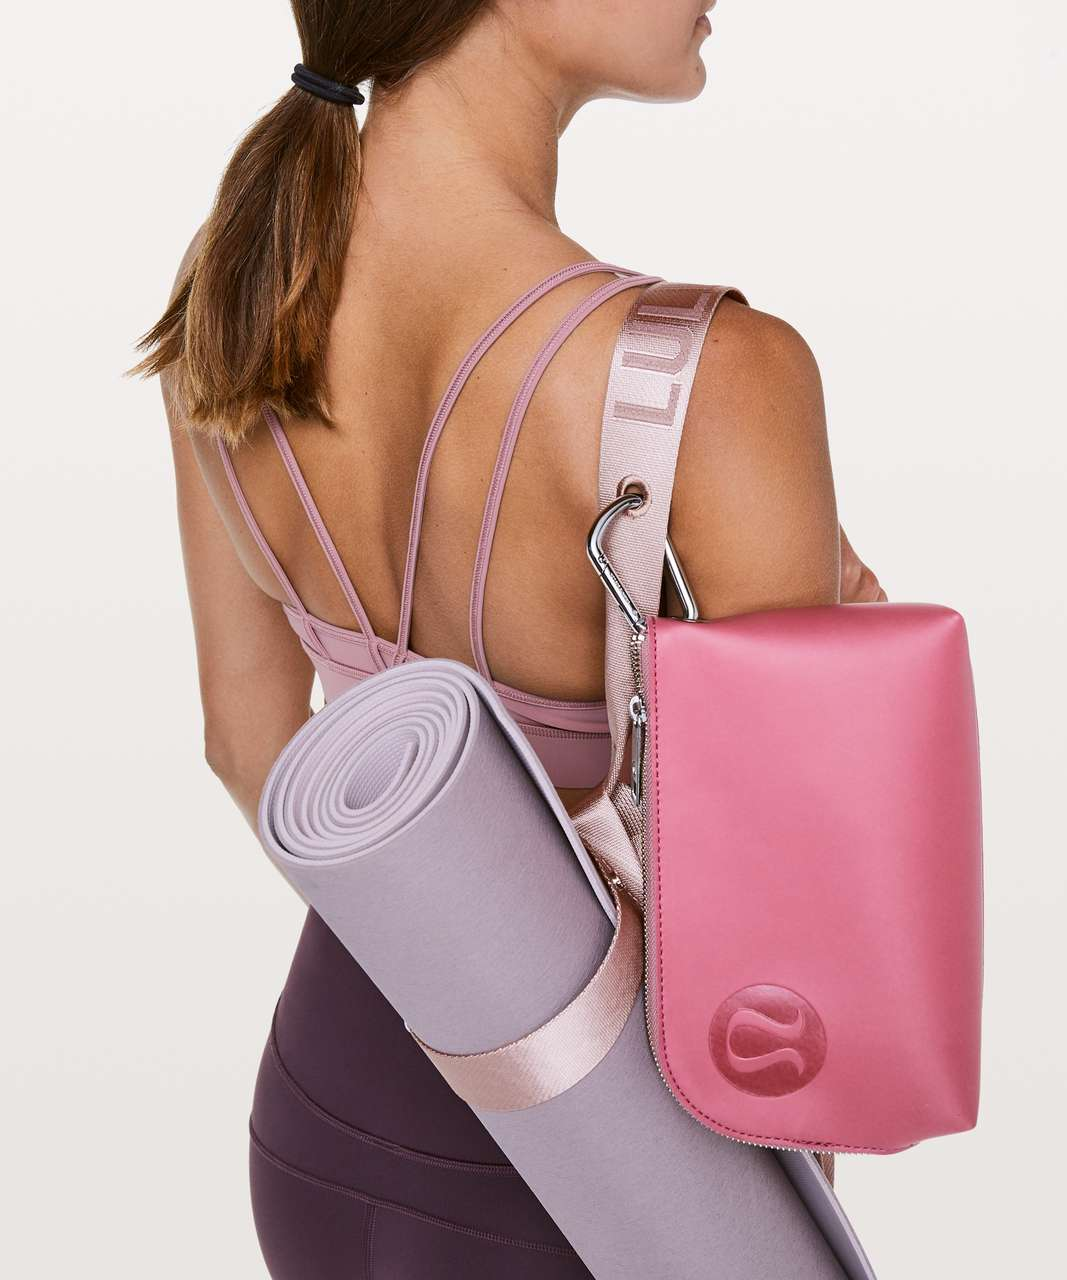 Lululemon Loop It Up Mat Strap *Squad - Porcelain Pink / Misty Mauve